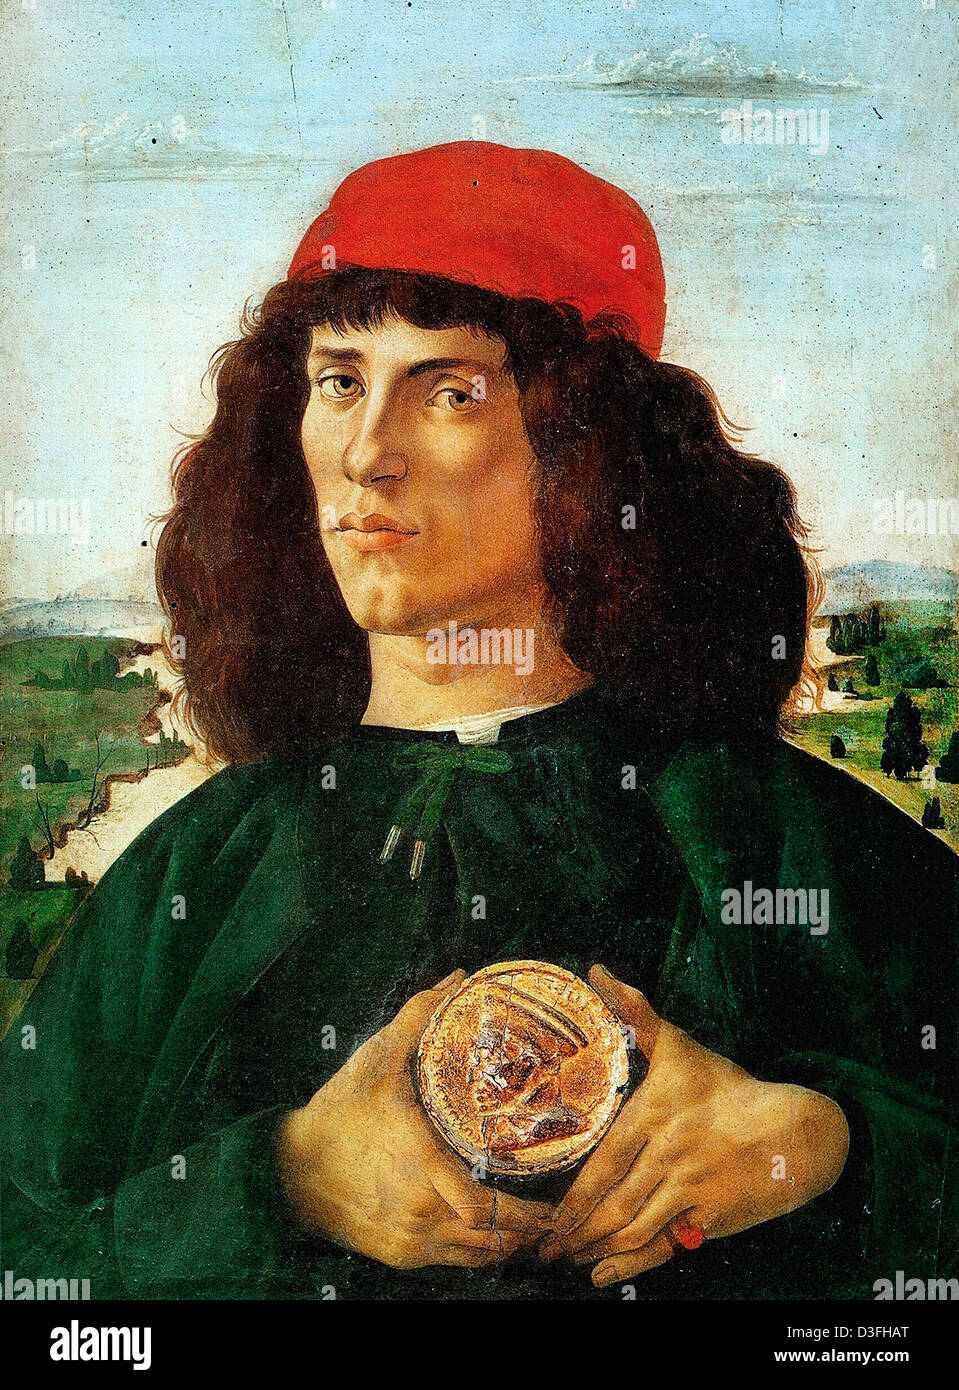 Sandro Botticelli, Portrait of a Man with a Medal of Cosimo the Elder 1474-1475 Tempera on panel. Uffizi, Florence - Stock Image